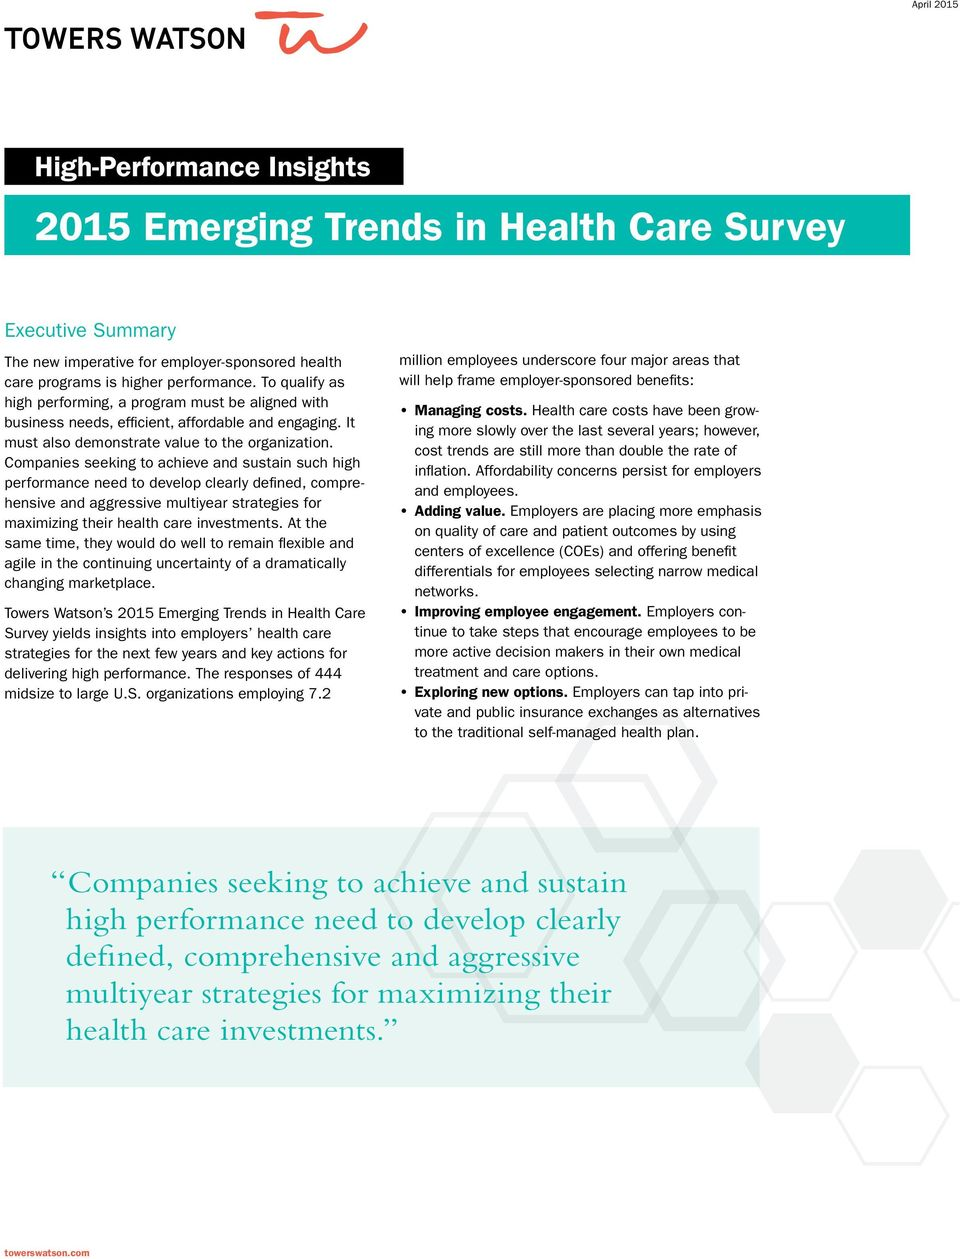 Companies seeking to achieve and sustain such high performance need to develop clearly defined, comprehensive and aggressive multiyear strategies for maximizing their health care investments.